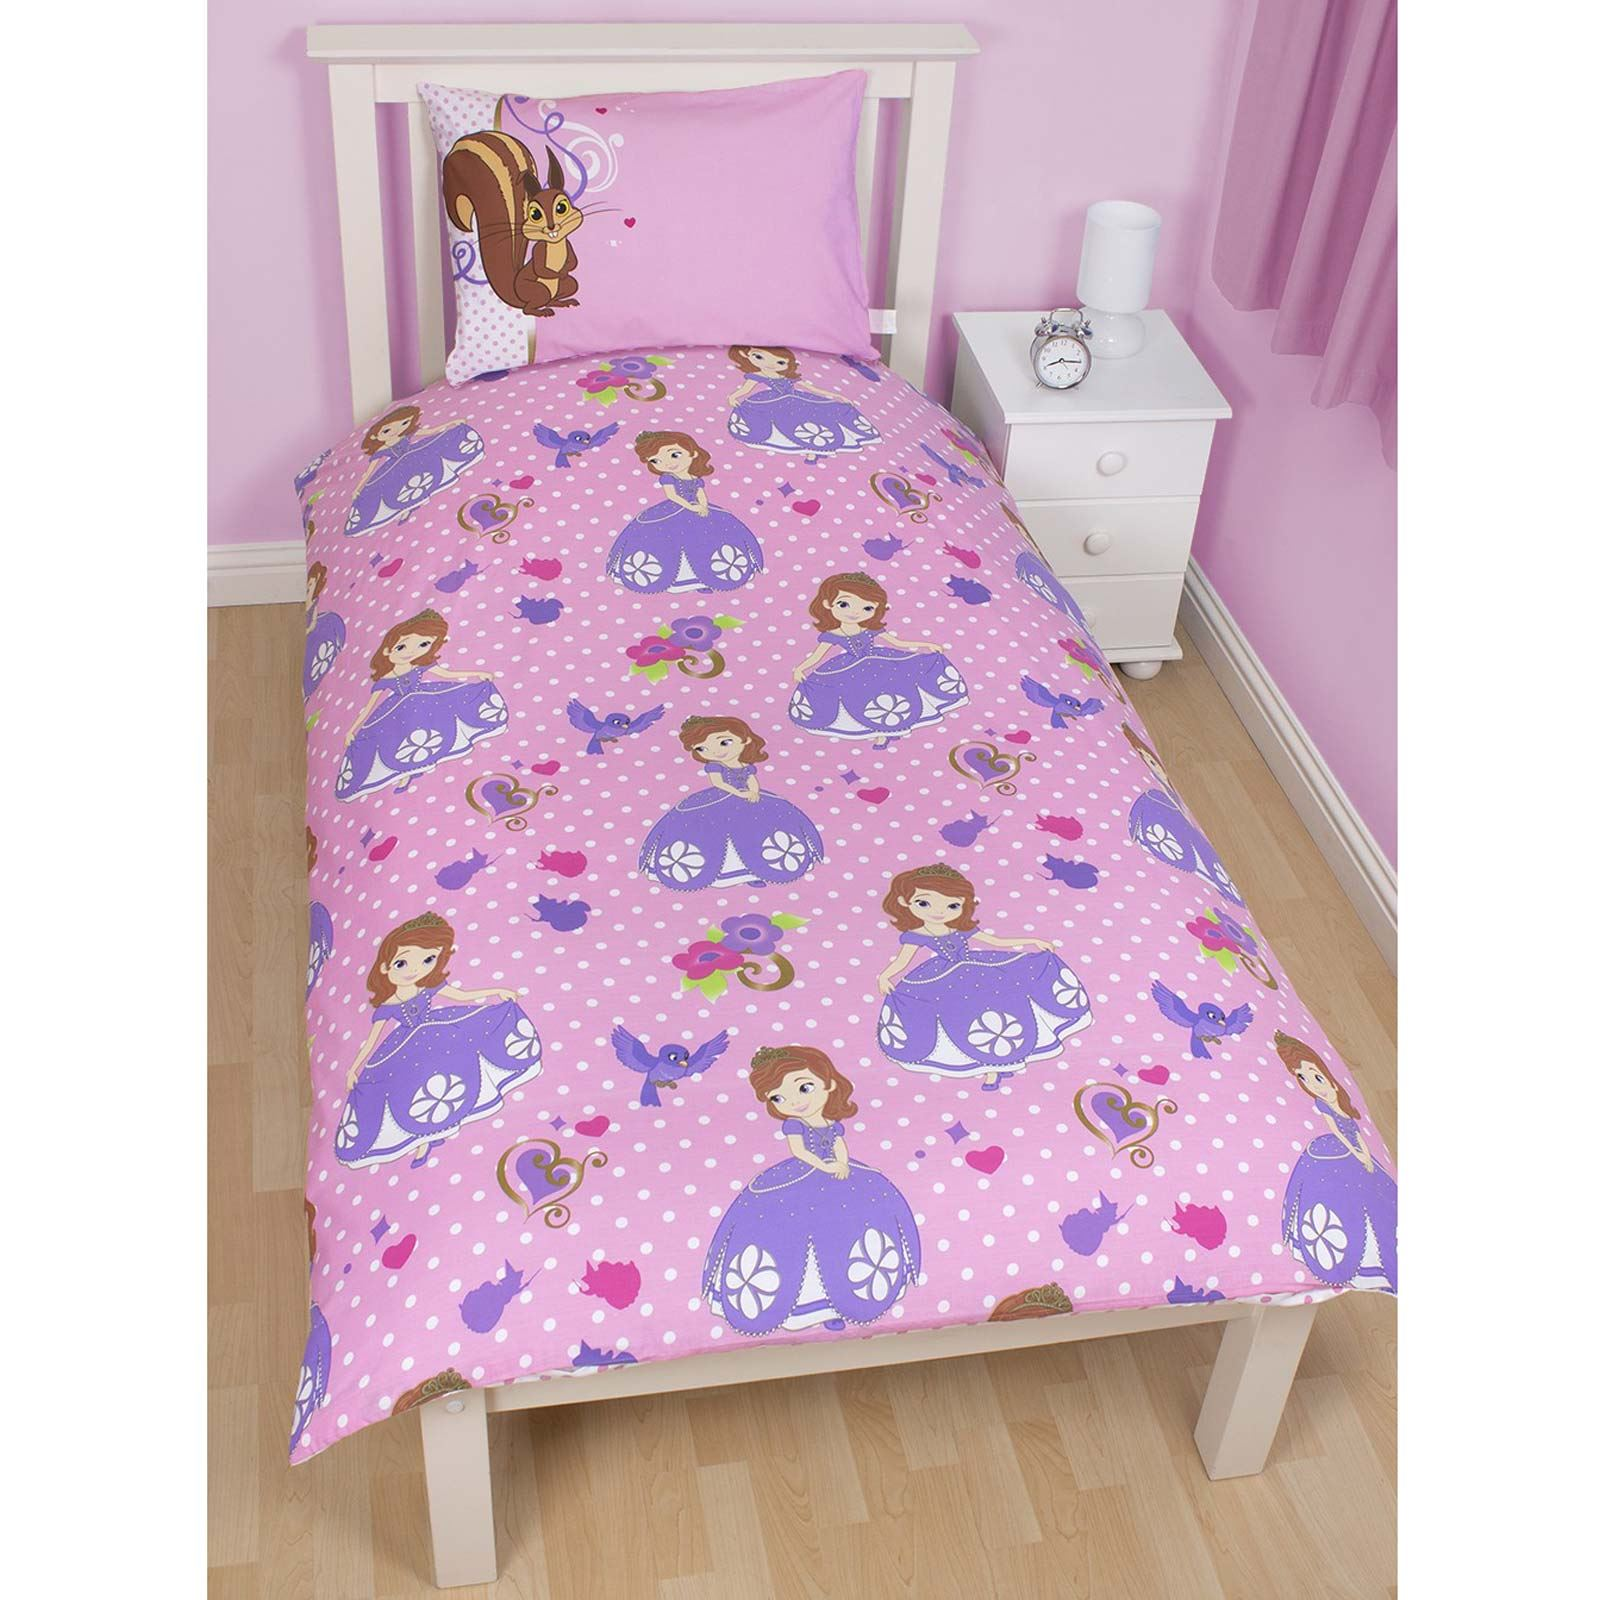 Disney sofia the first bedding and bedroom accessories - Sofia the first bedroom ...